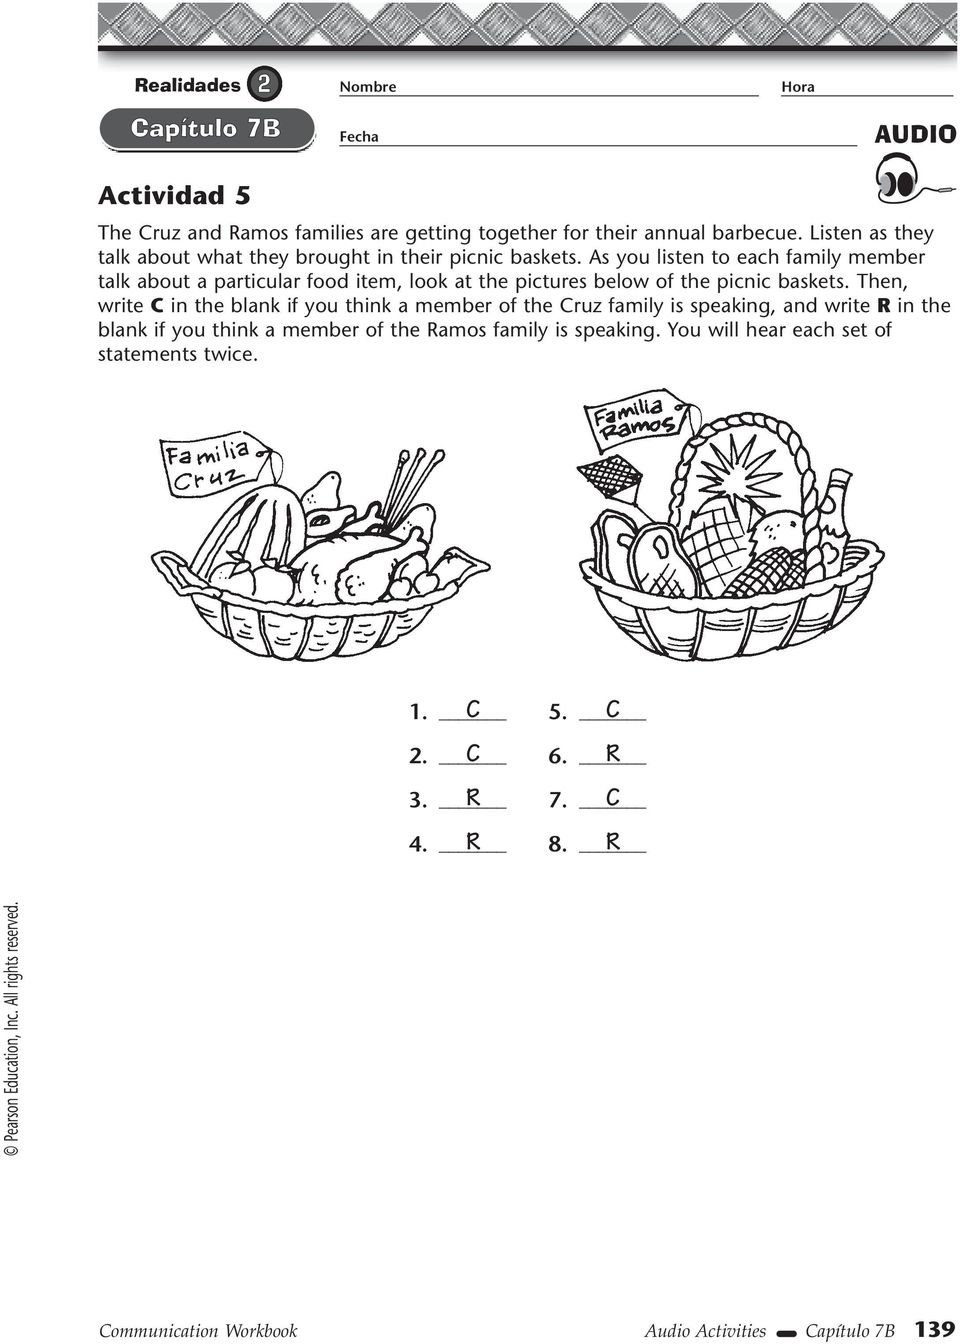 As you listen to each family member talk about a particular food item, look at the pictures below of the picnic baskets.